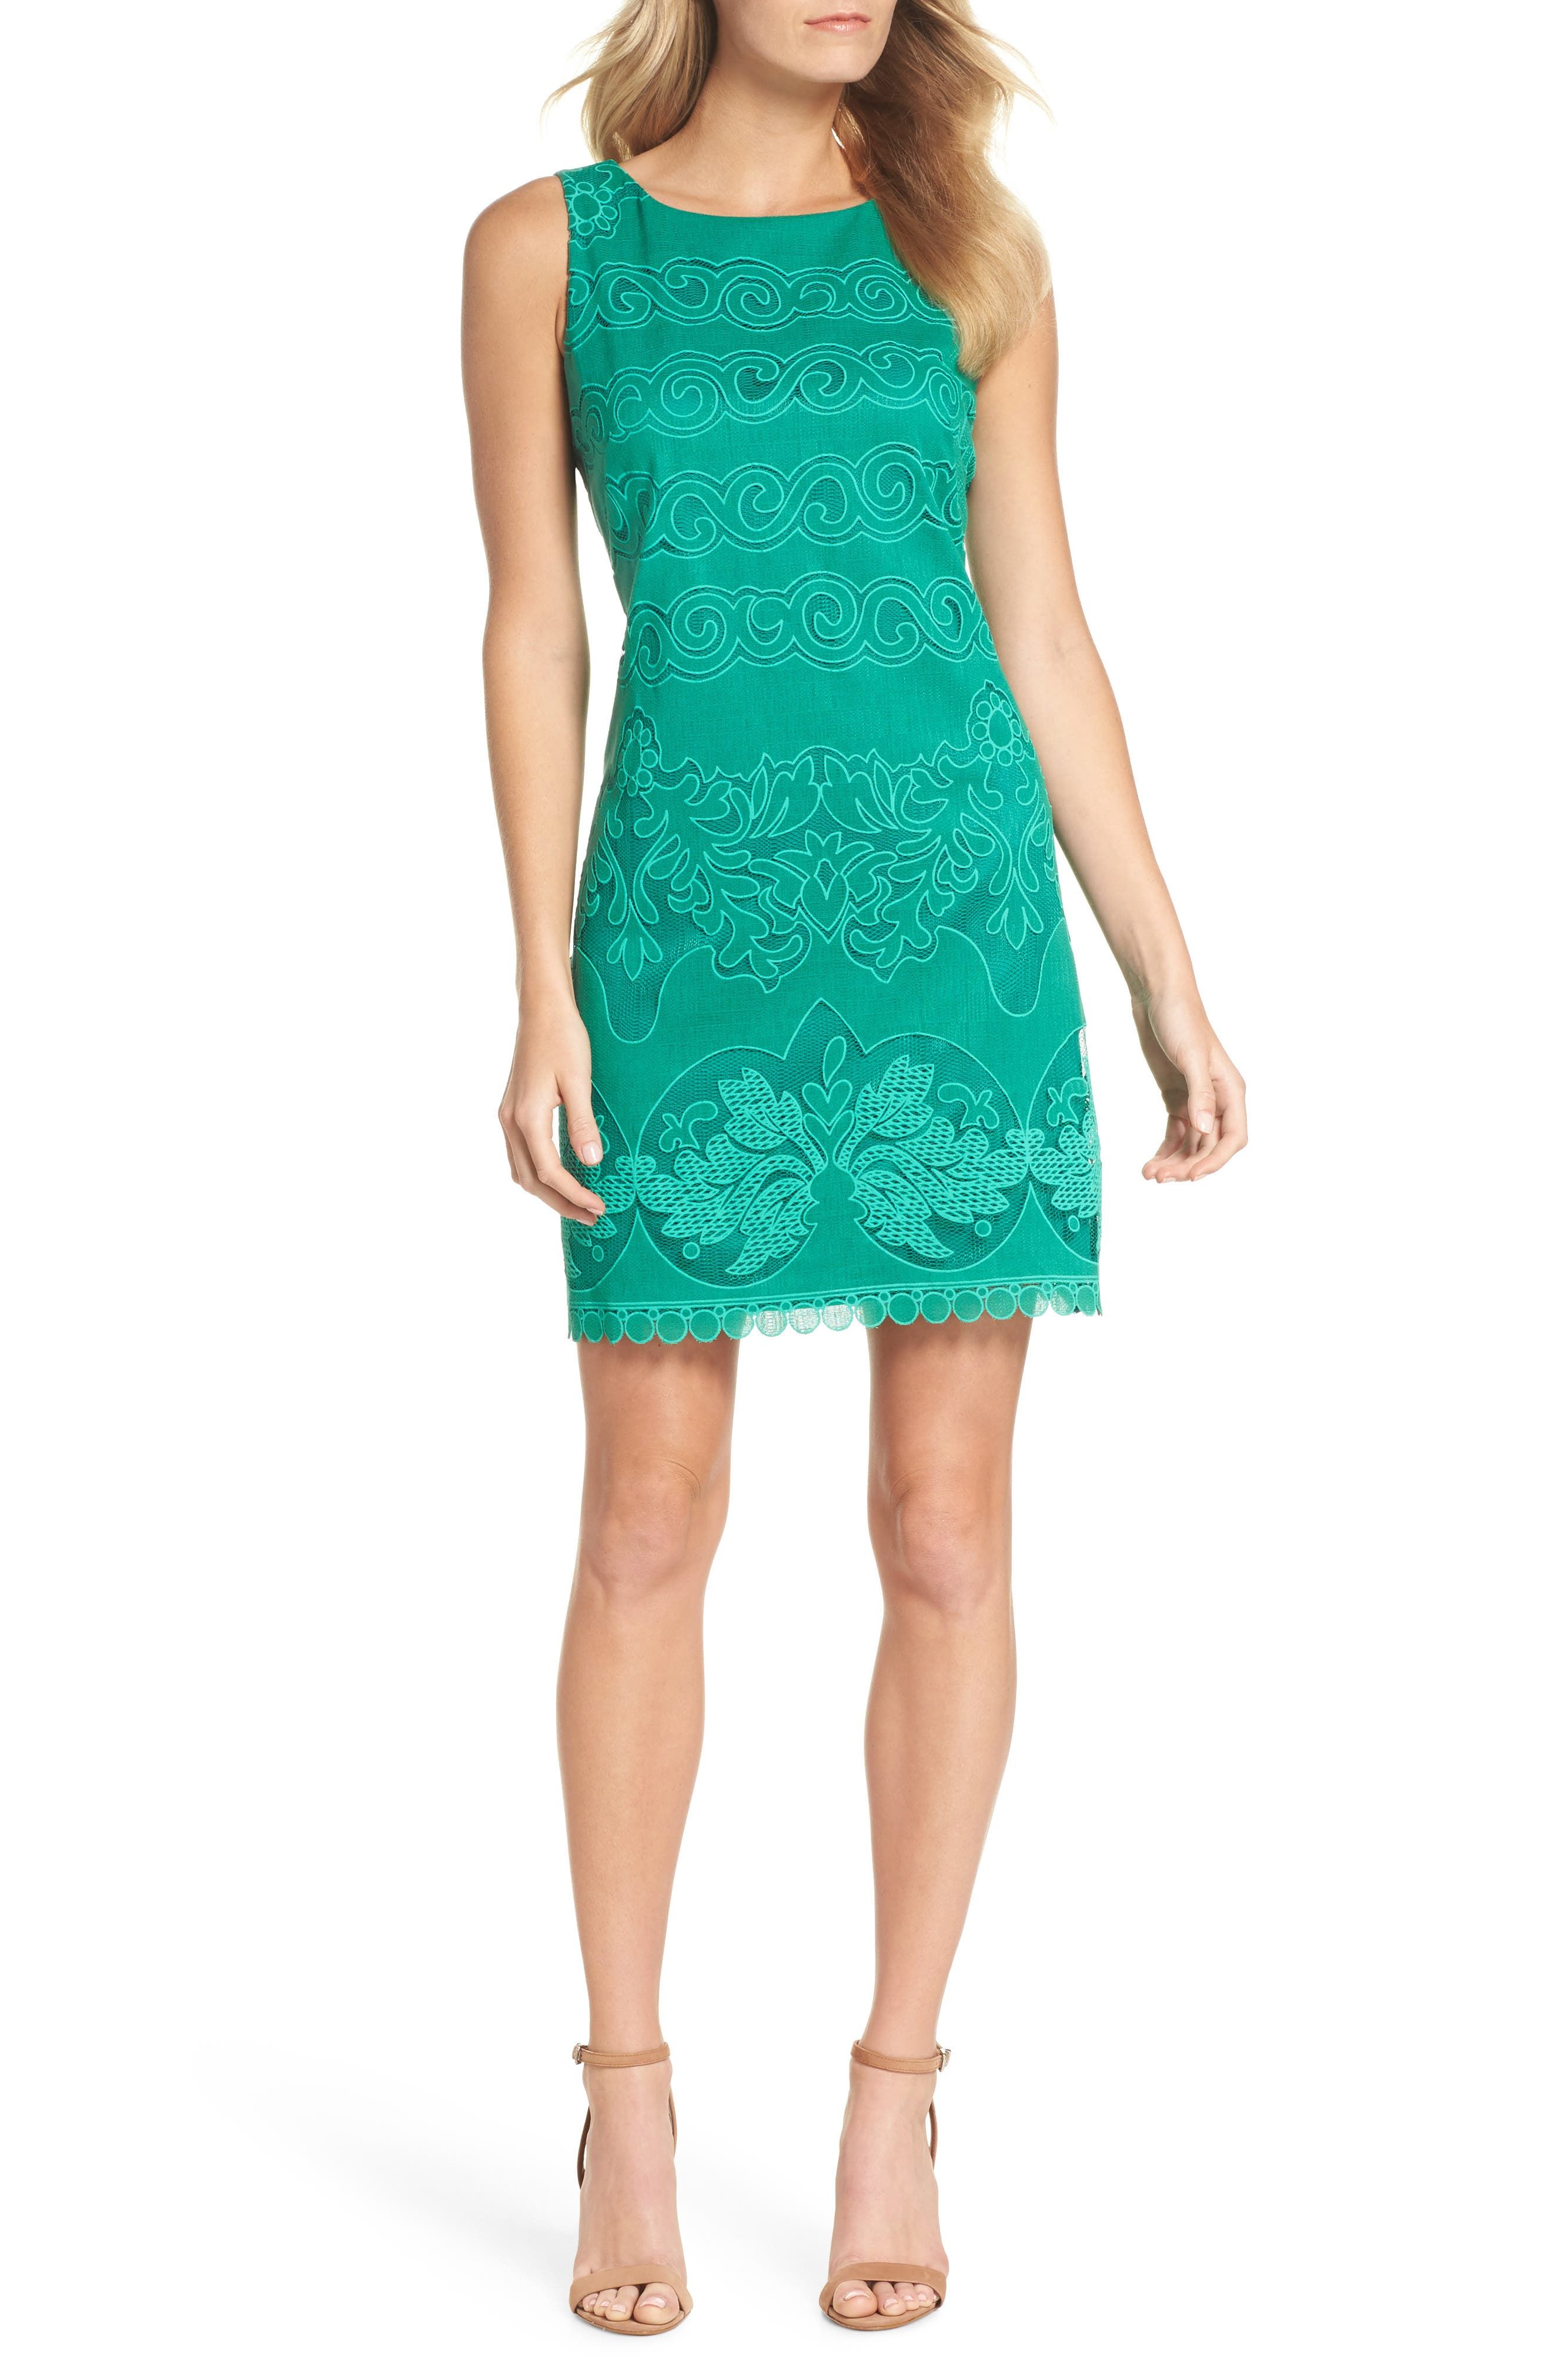 A-Line Dress,                             Main thumbnail 1, color,                             Green